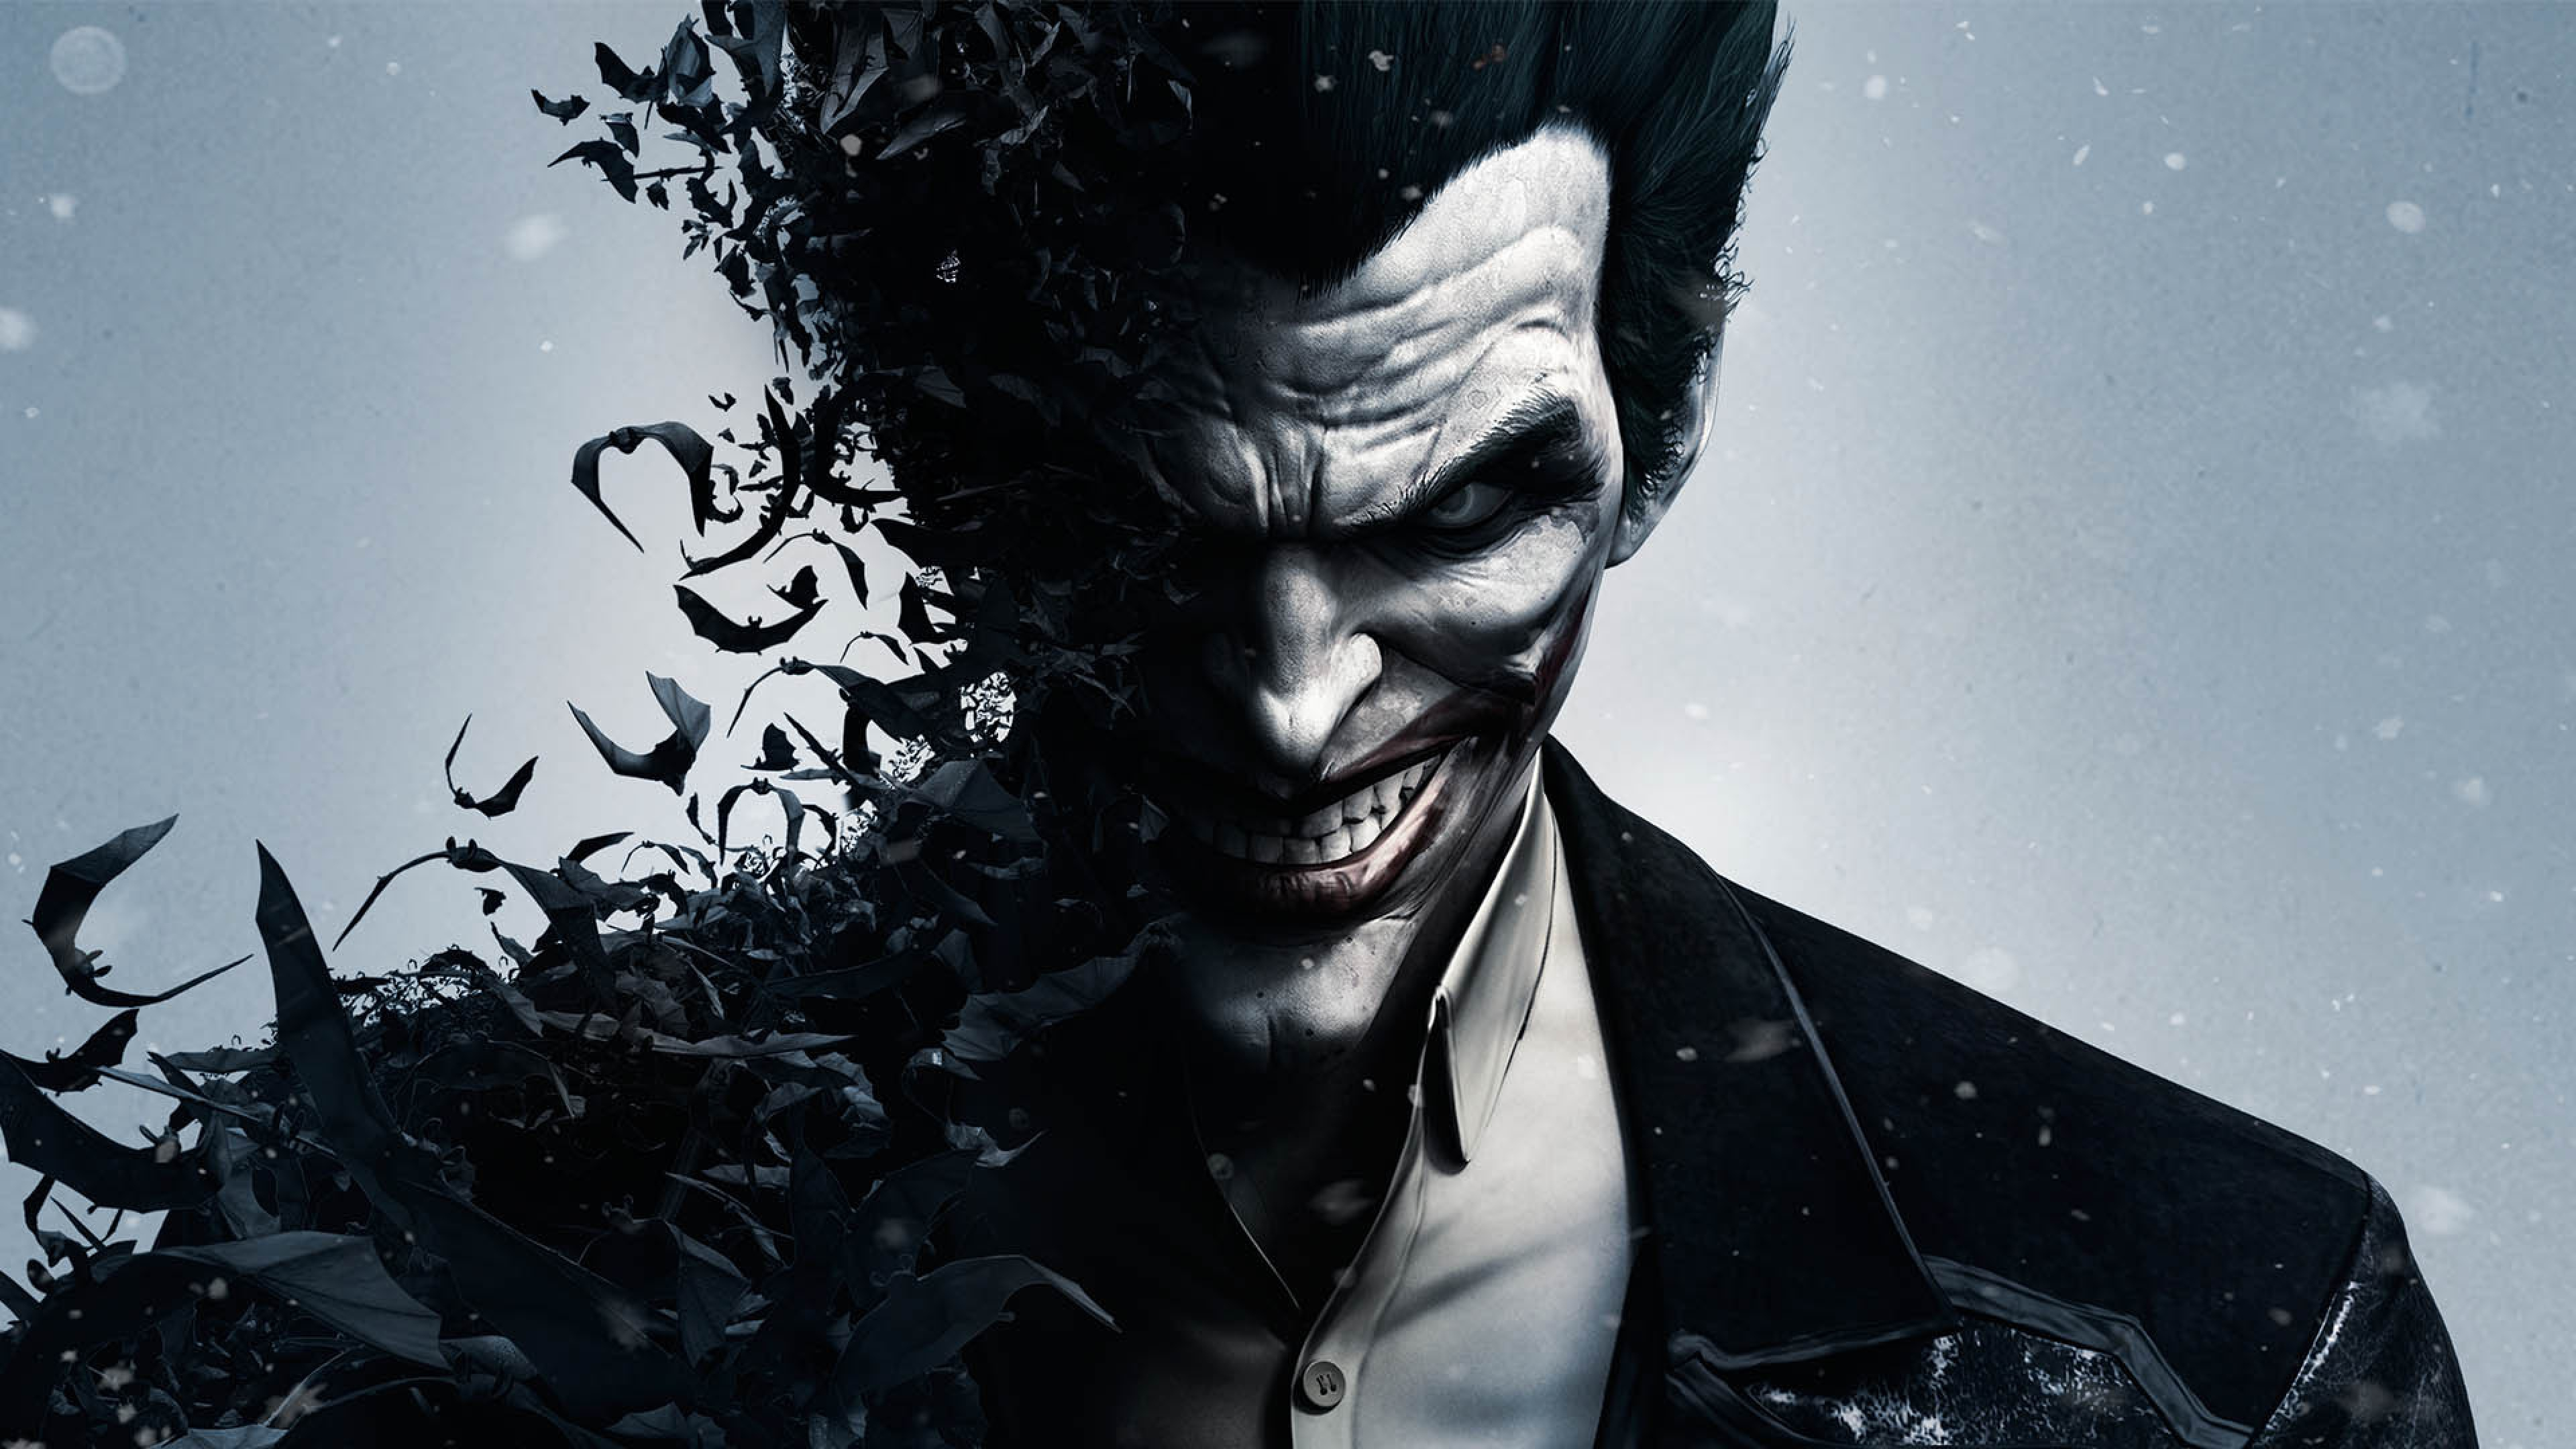 Joker Origin Movie (My Thoughts)